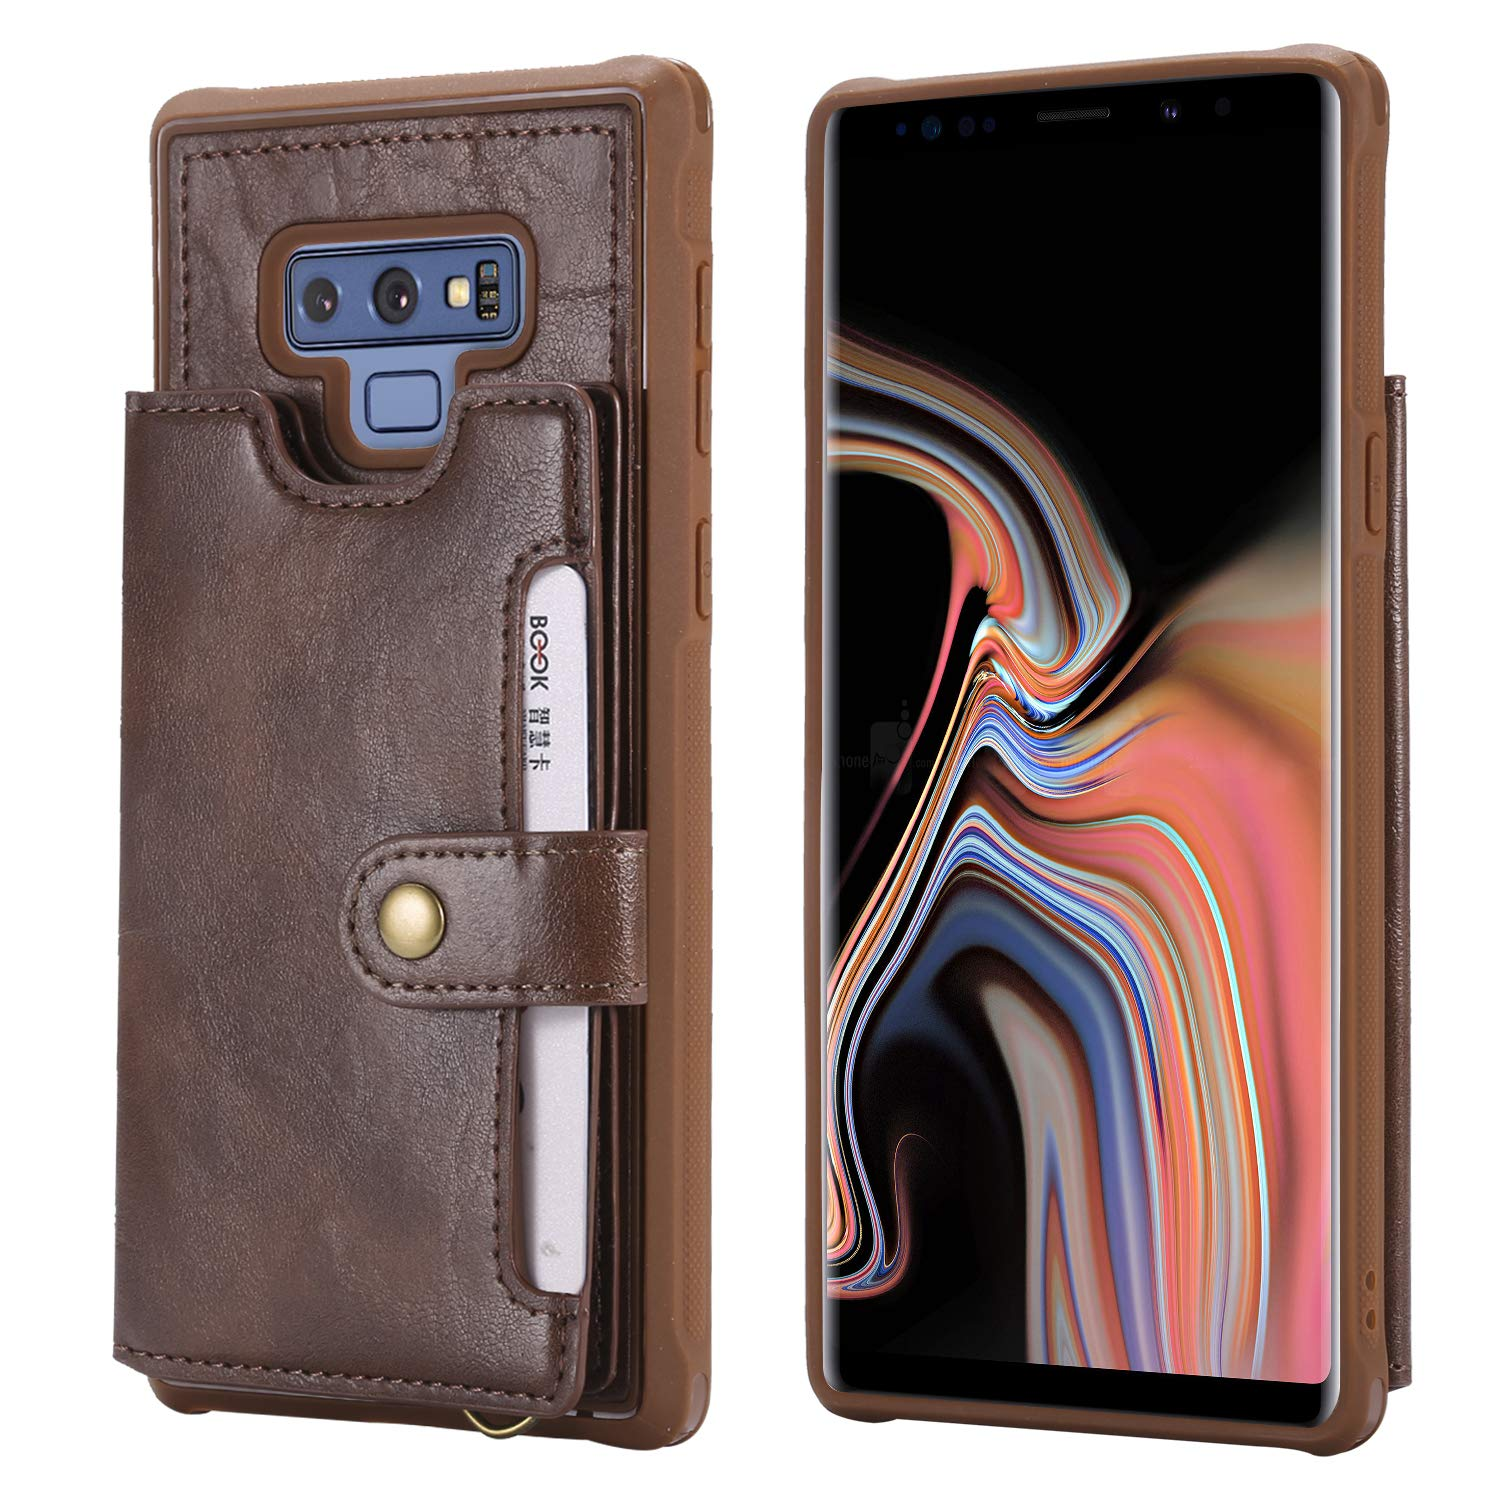 Galaxy Note 8 Case,NowTH Leather Wallet Humanized Card Slot Design 360 Degree of Shockproof Protection Cover for Samsung Galaxy Note 8 (Coffee)